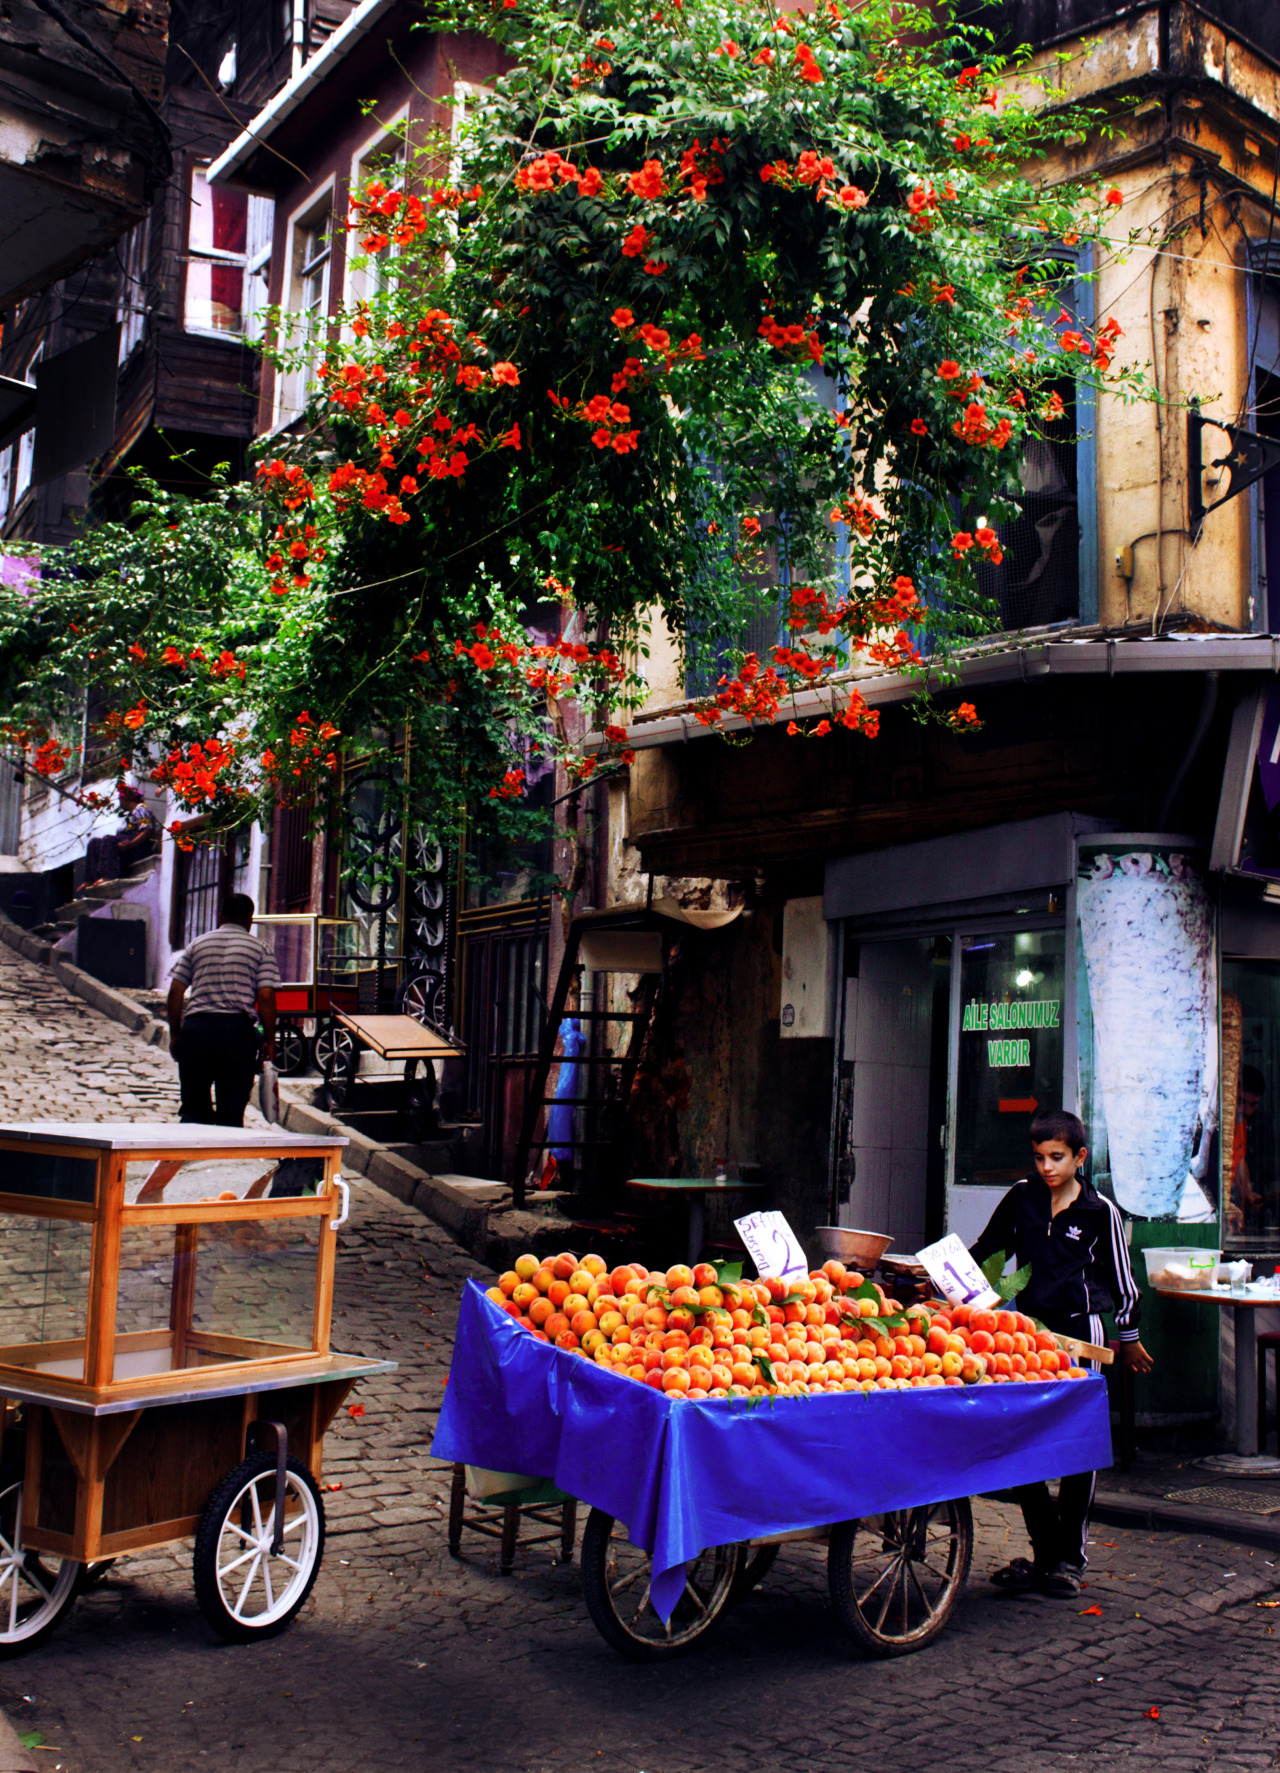 amandapicotte:  Boy selling peaches - Istanbul, Turkey - July 2012